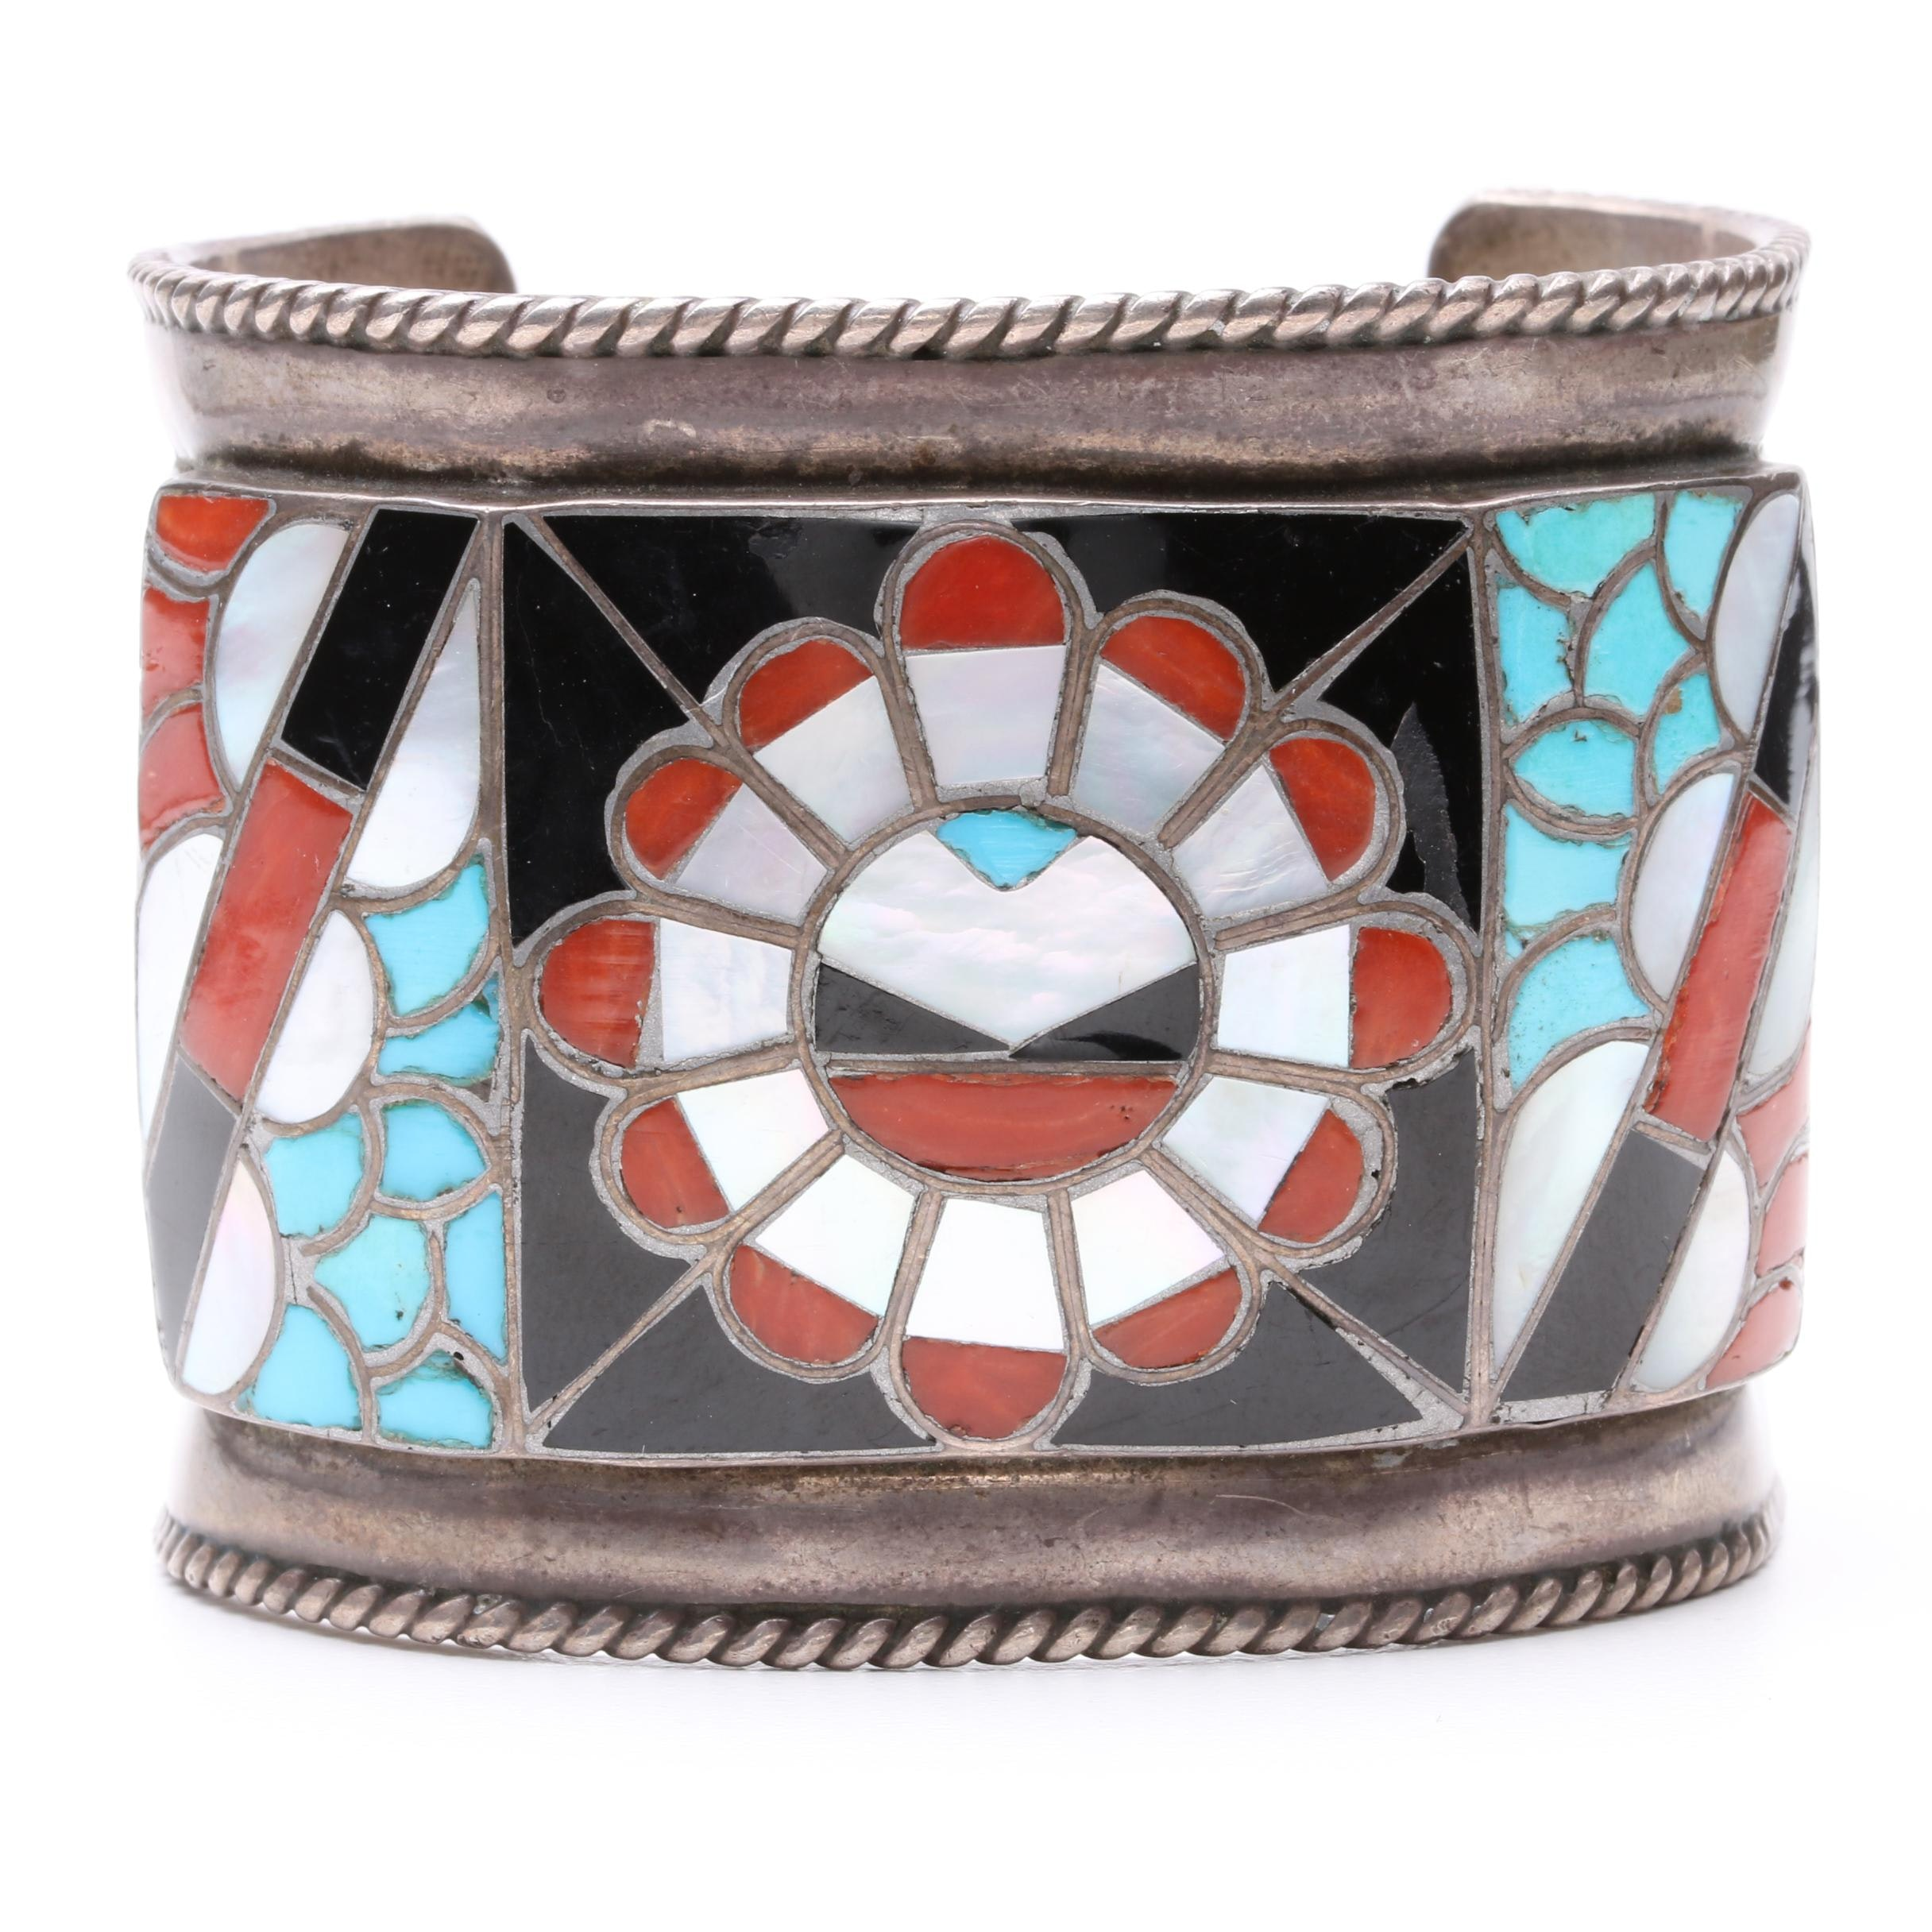 Vintage Southwestern Style Sterling Silver Cuff Bracelet Including Turquoise